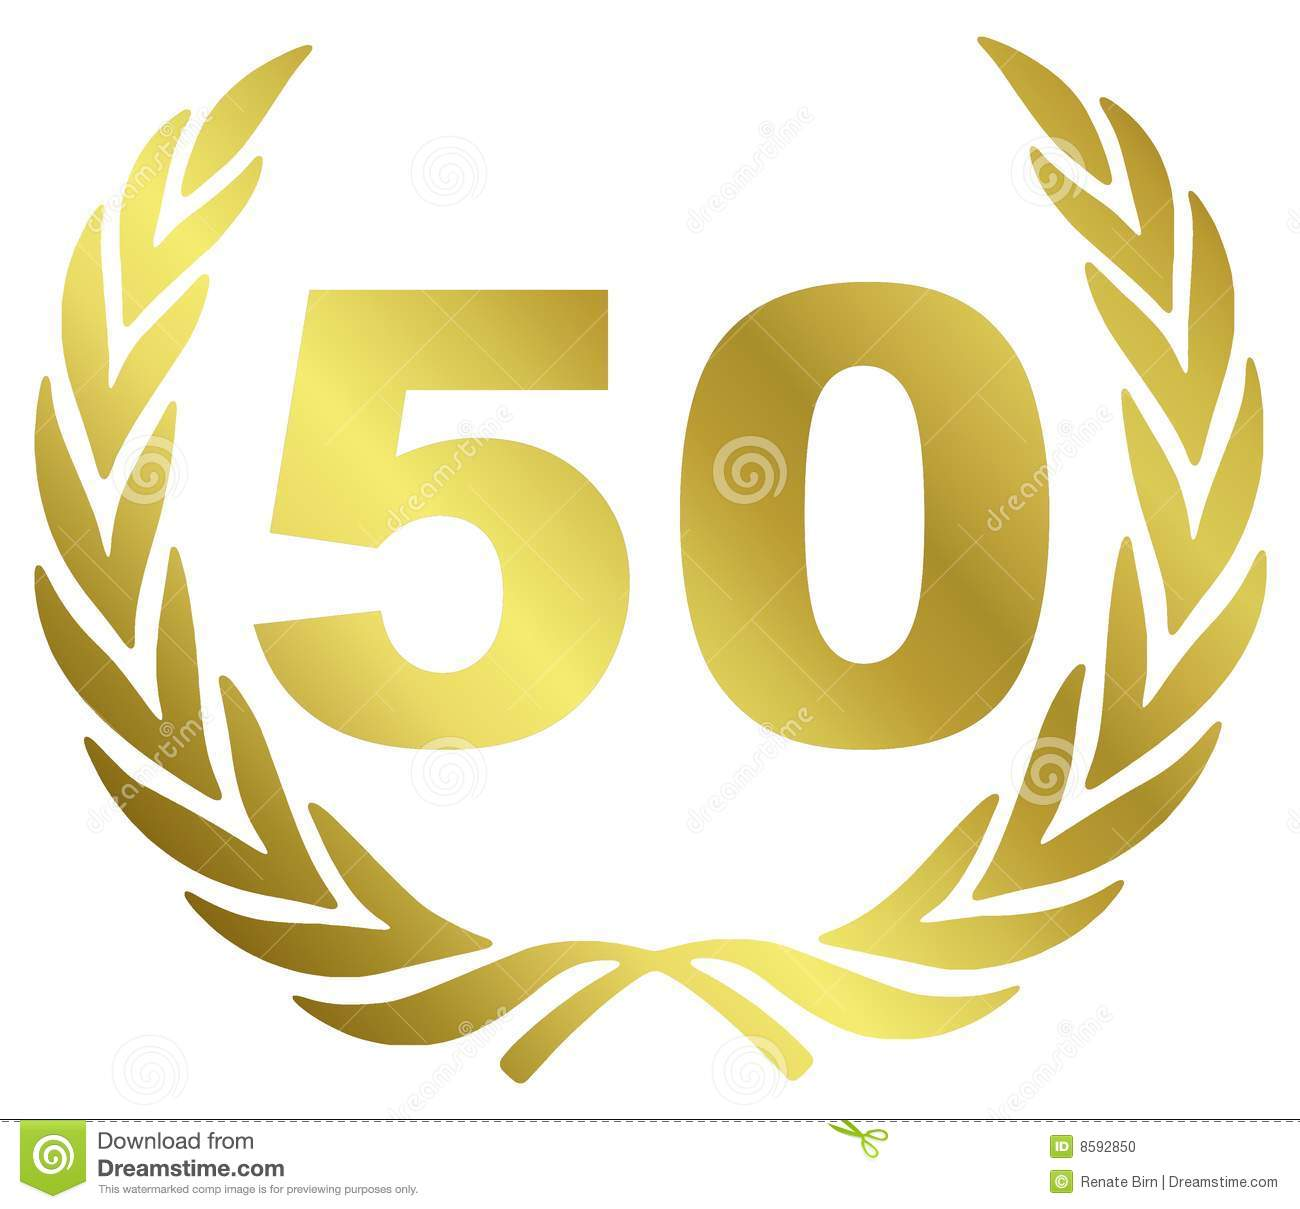 50 Anniversary illustration with laurel wreath.